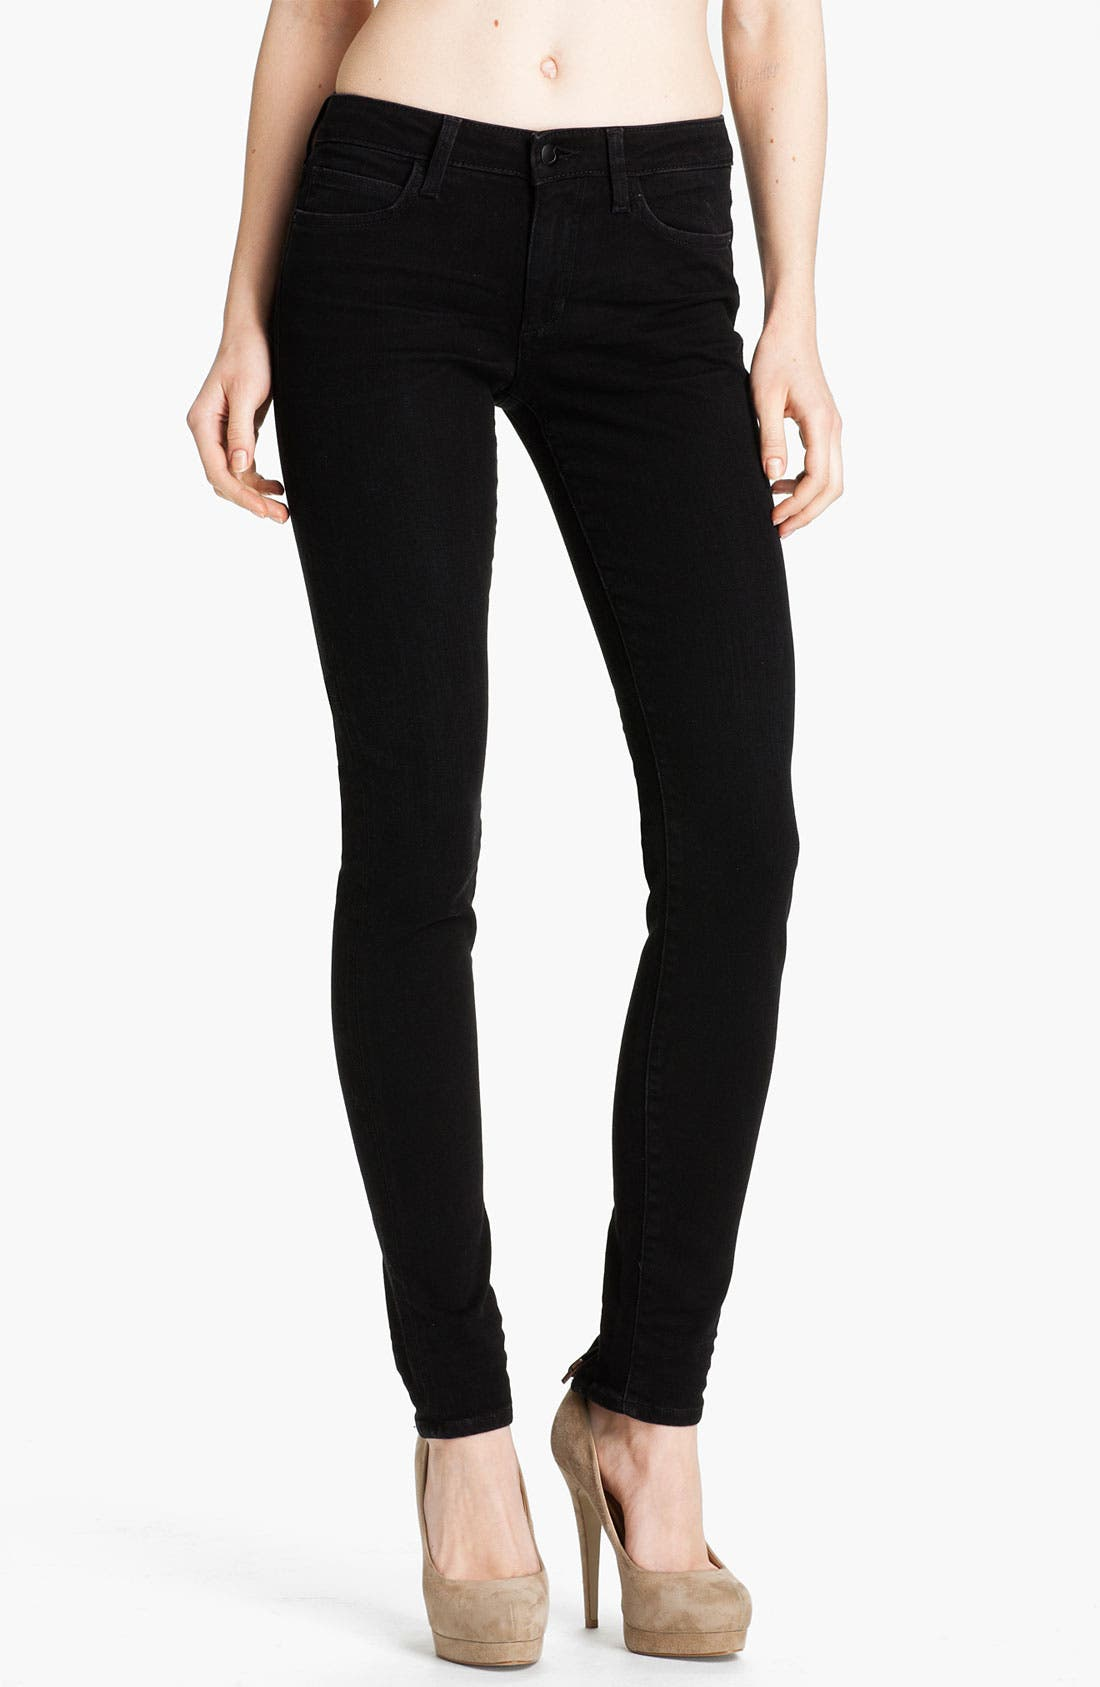 Alternate Image 1 Selected - Joe's Ankle Zip Skinny Jeans (Norah Black)